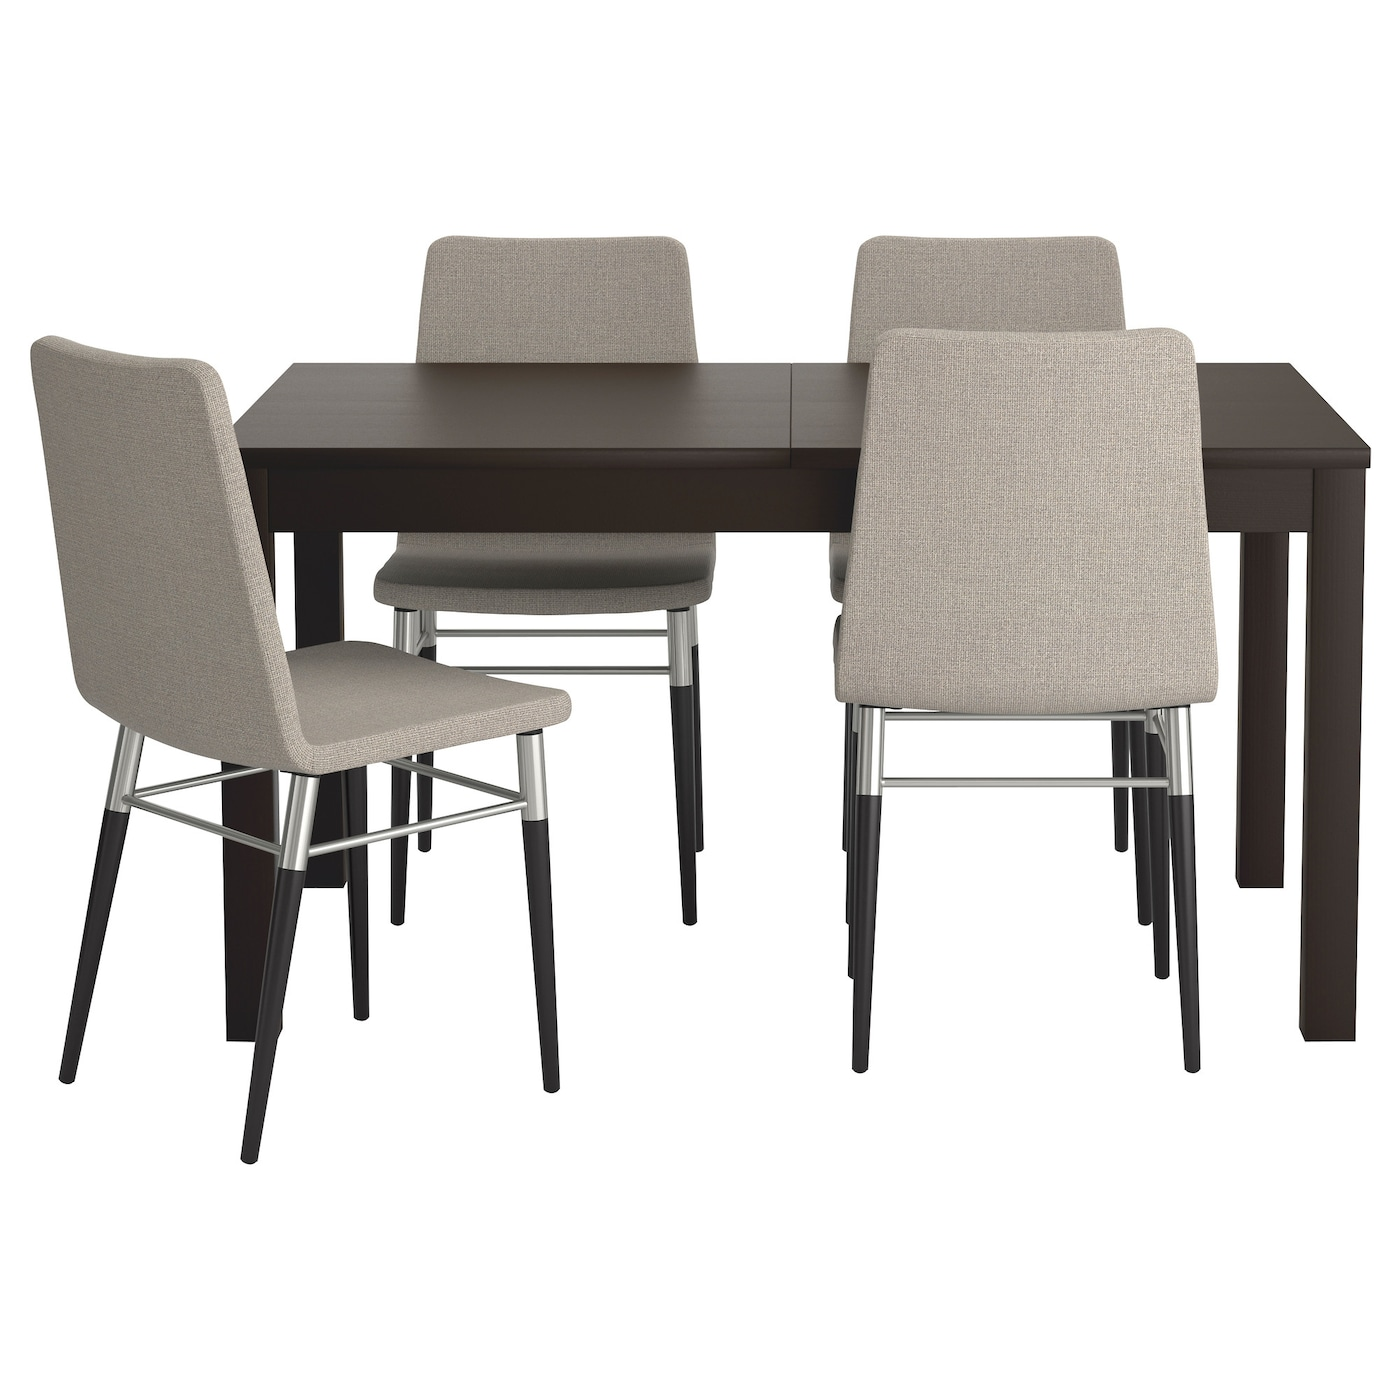 IKEA PREBEN/BJURSTA table et 4 chaises 2 rallonges incluses.